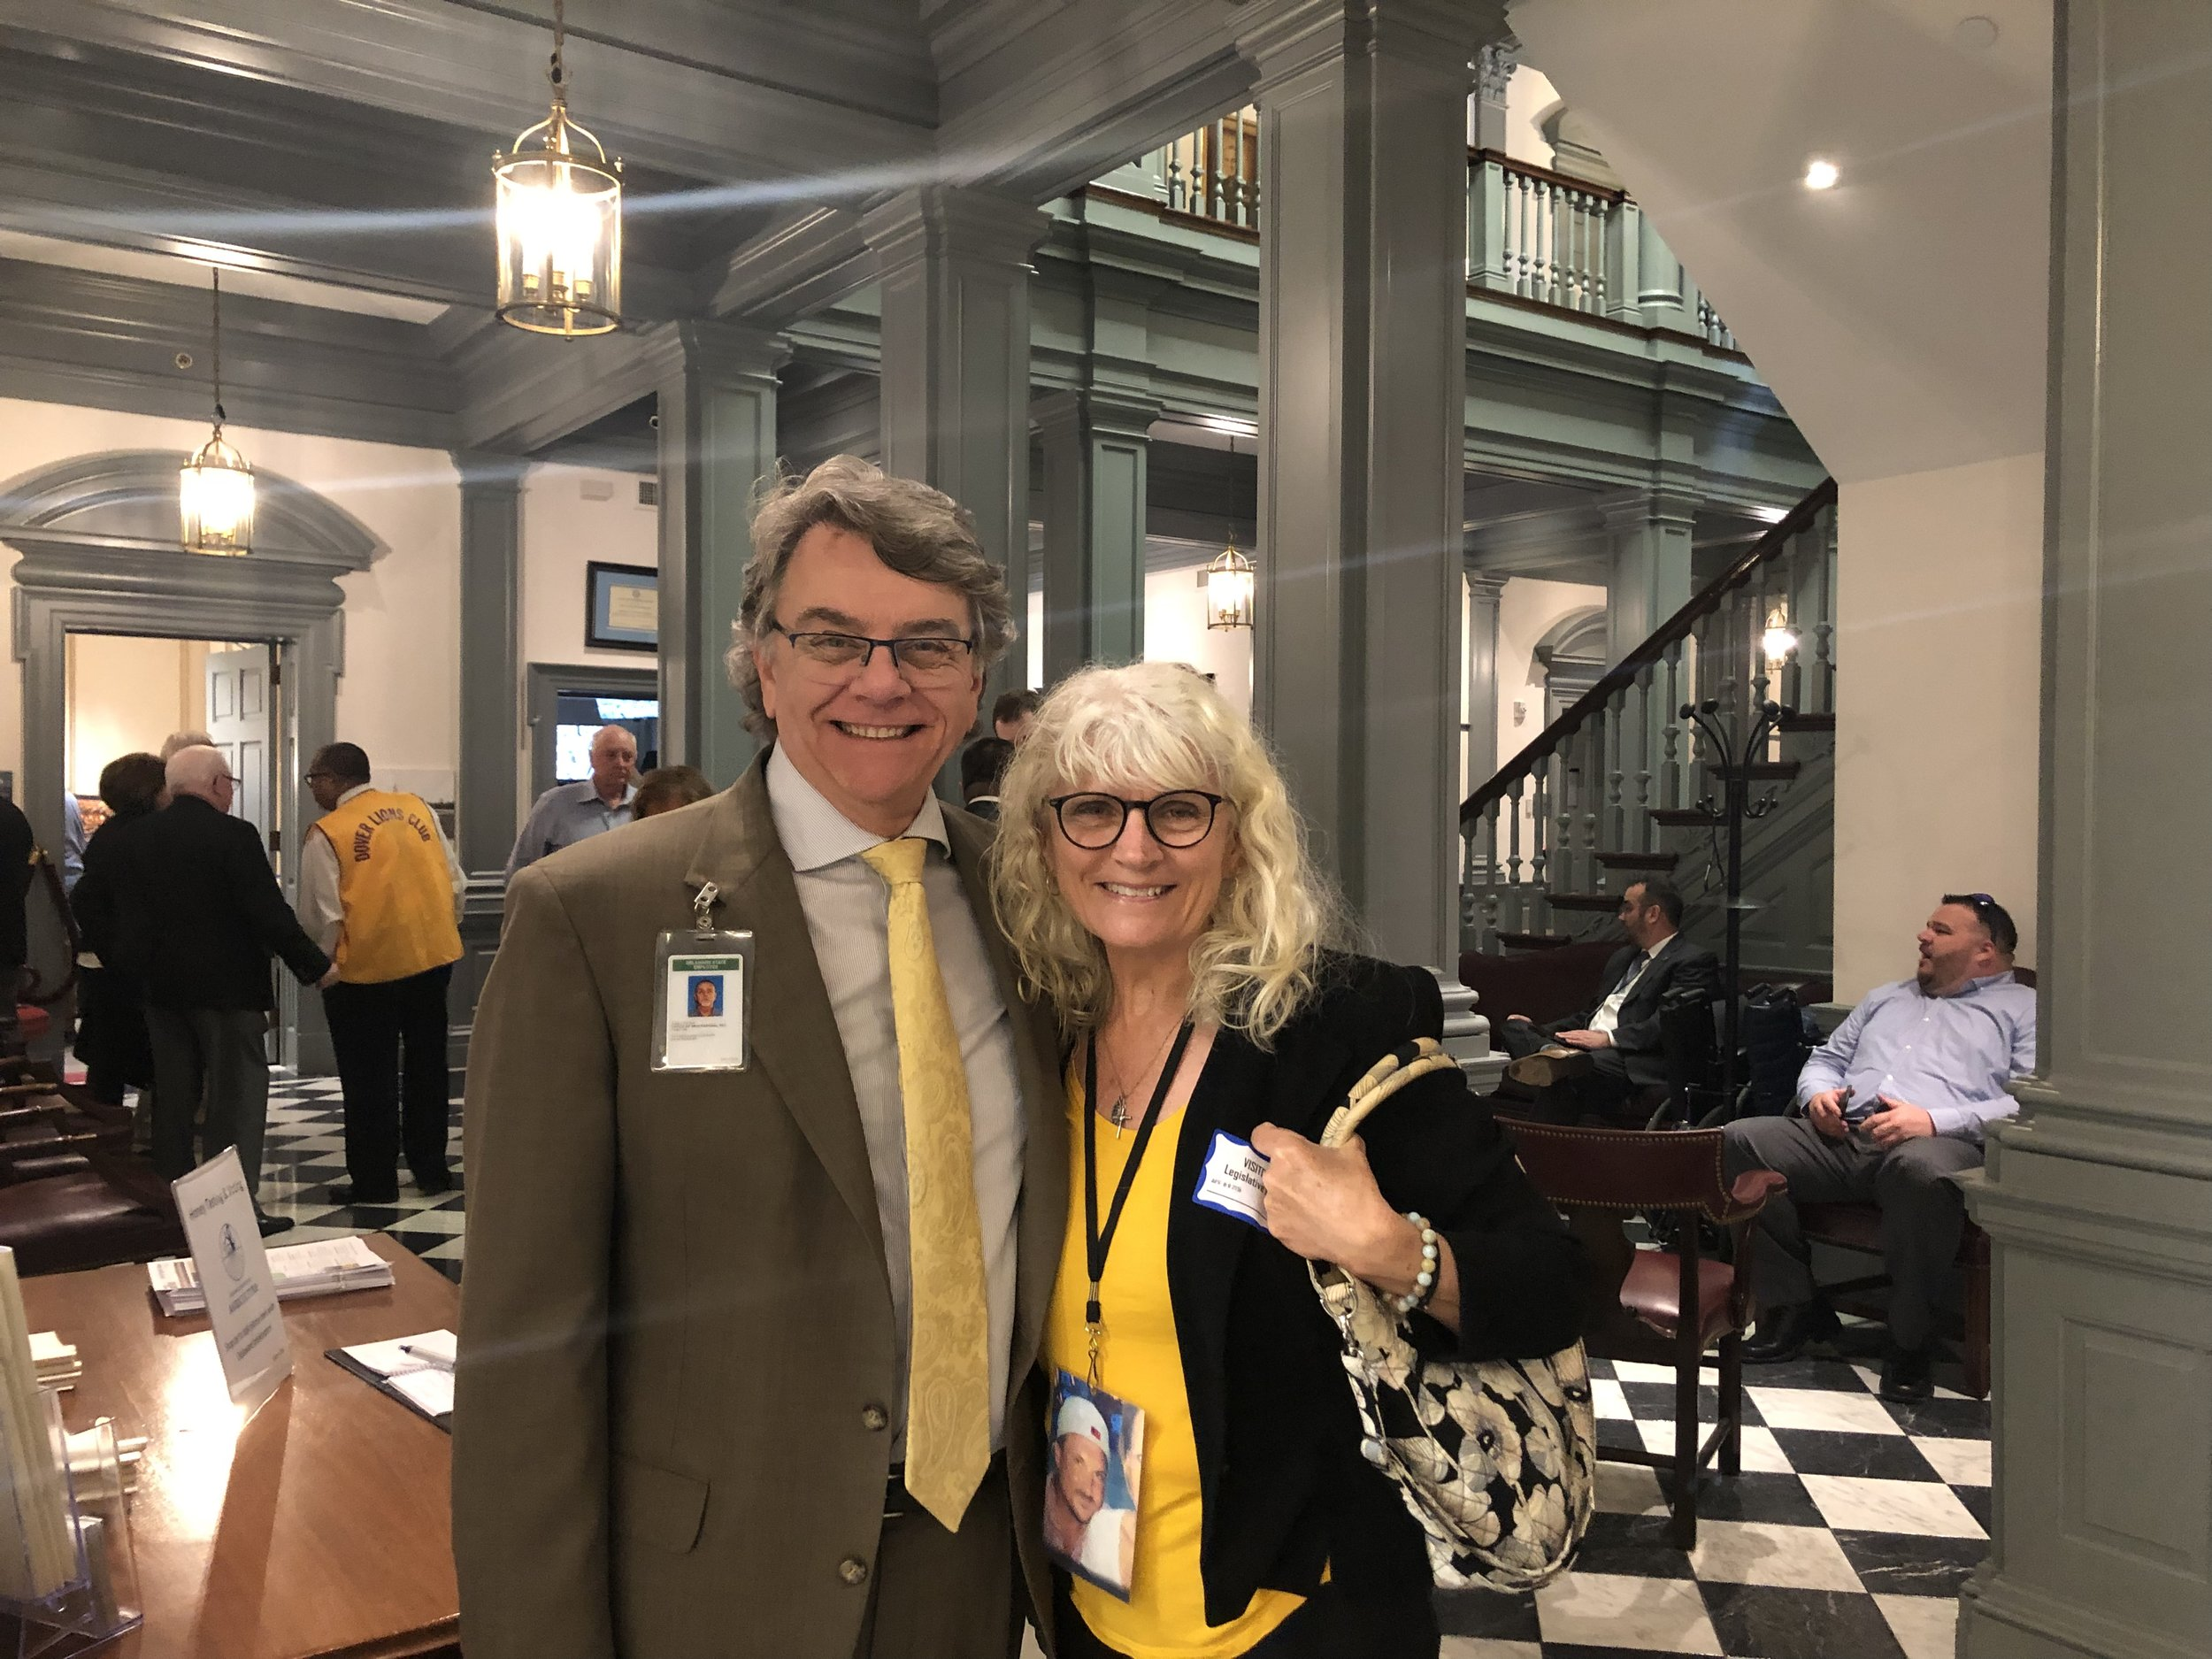 MaryBeth with a photograph of her son around her neck and David Mangler from the State of Delaware on April 9th at Legislative Hall in Dover Delaware